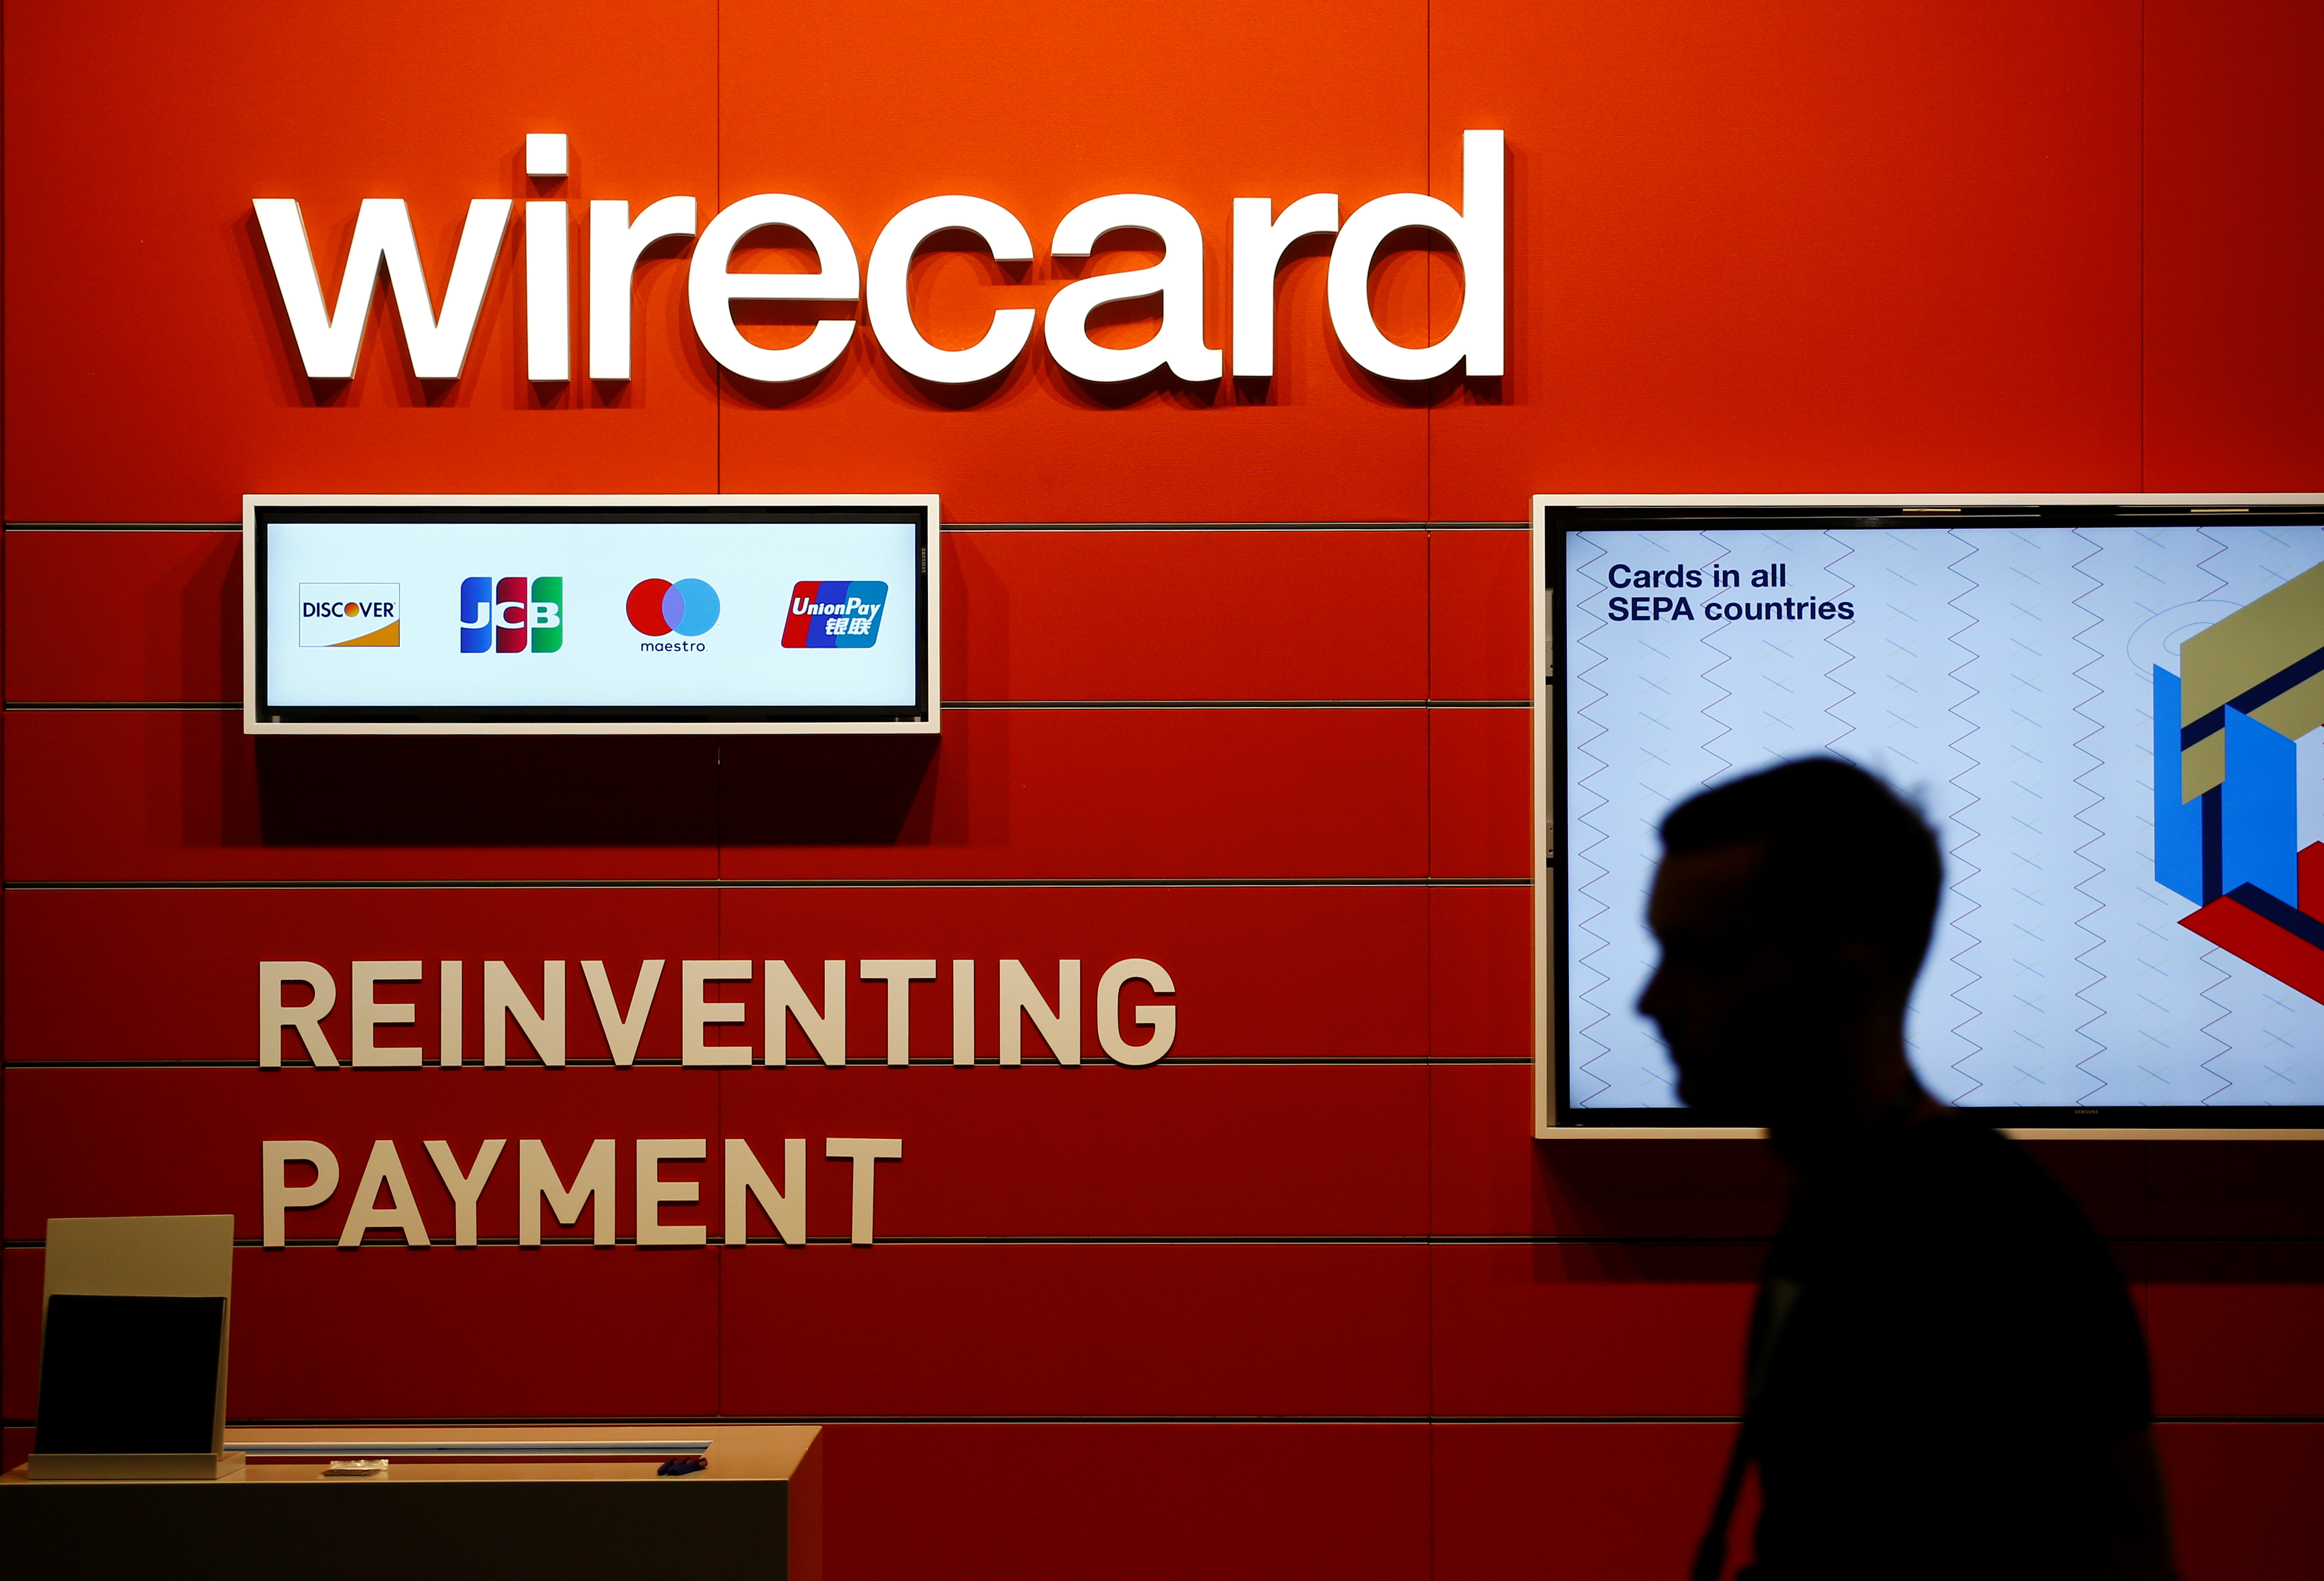 German Prosecutor Probing FT Journalist Over Wirecard